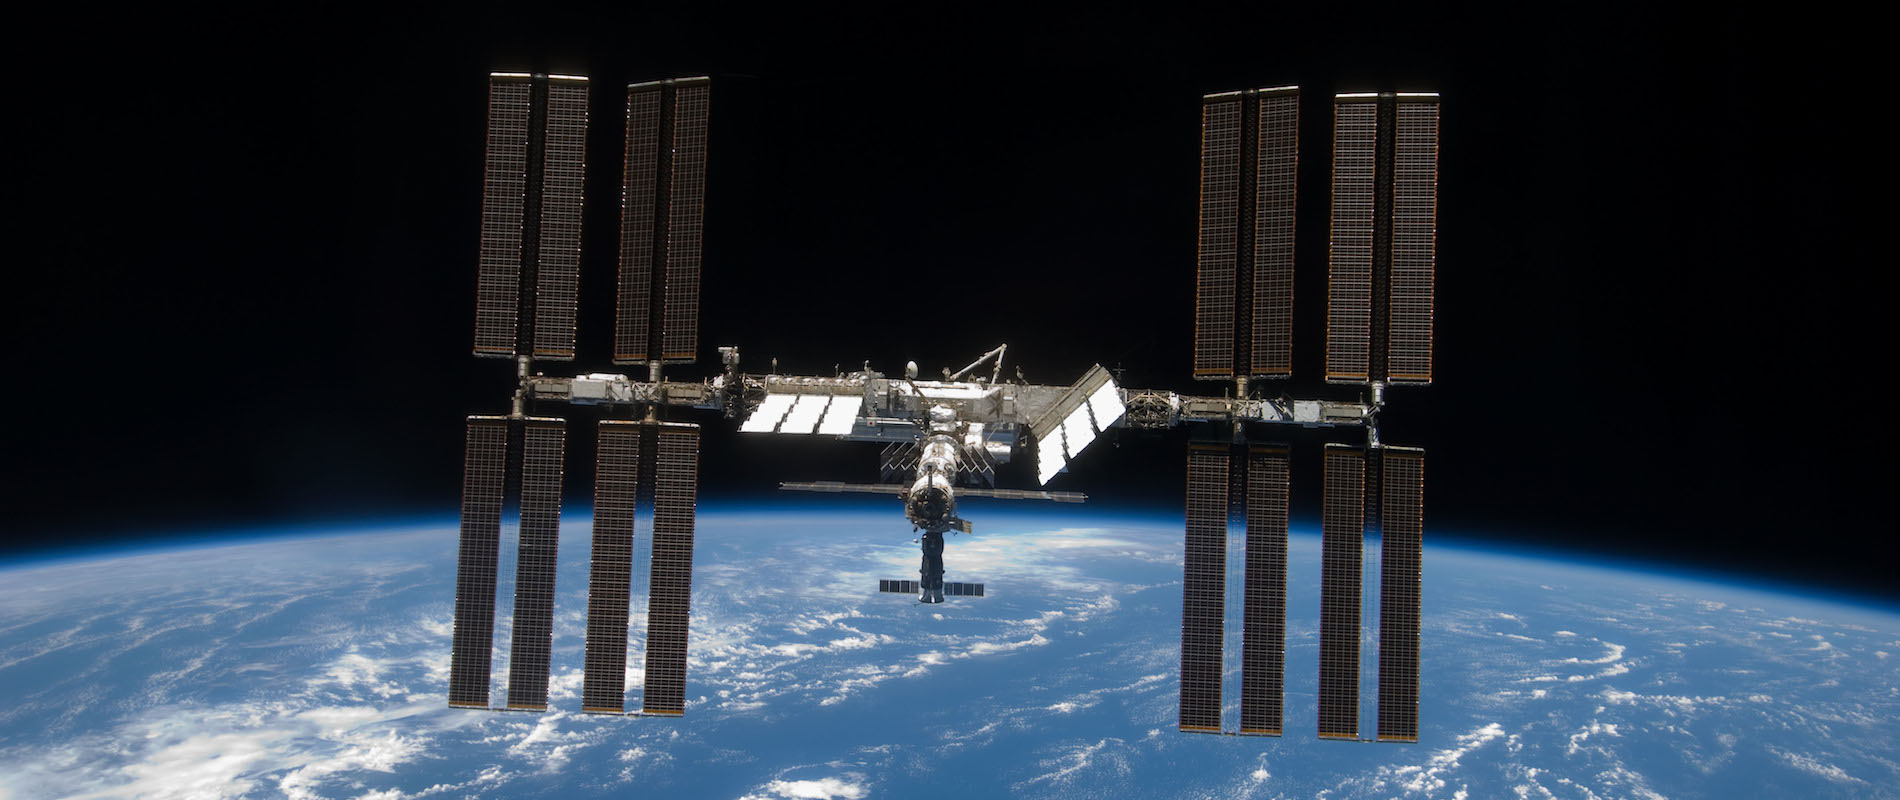 Happy 15th anniversary to International Space Station!